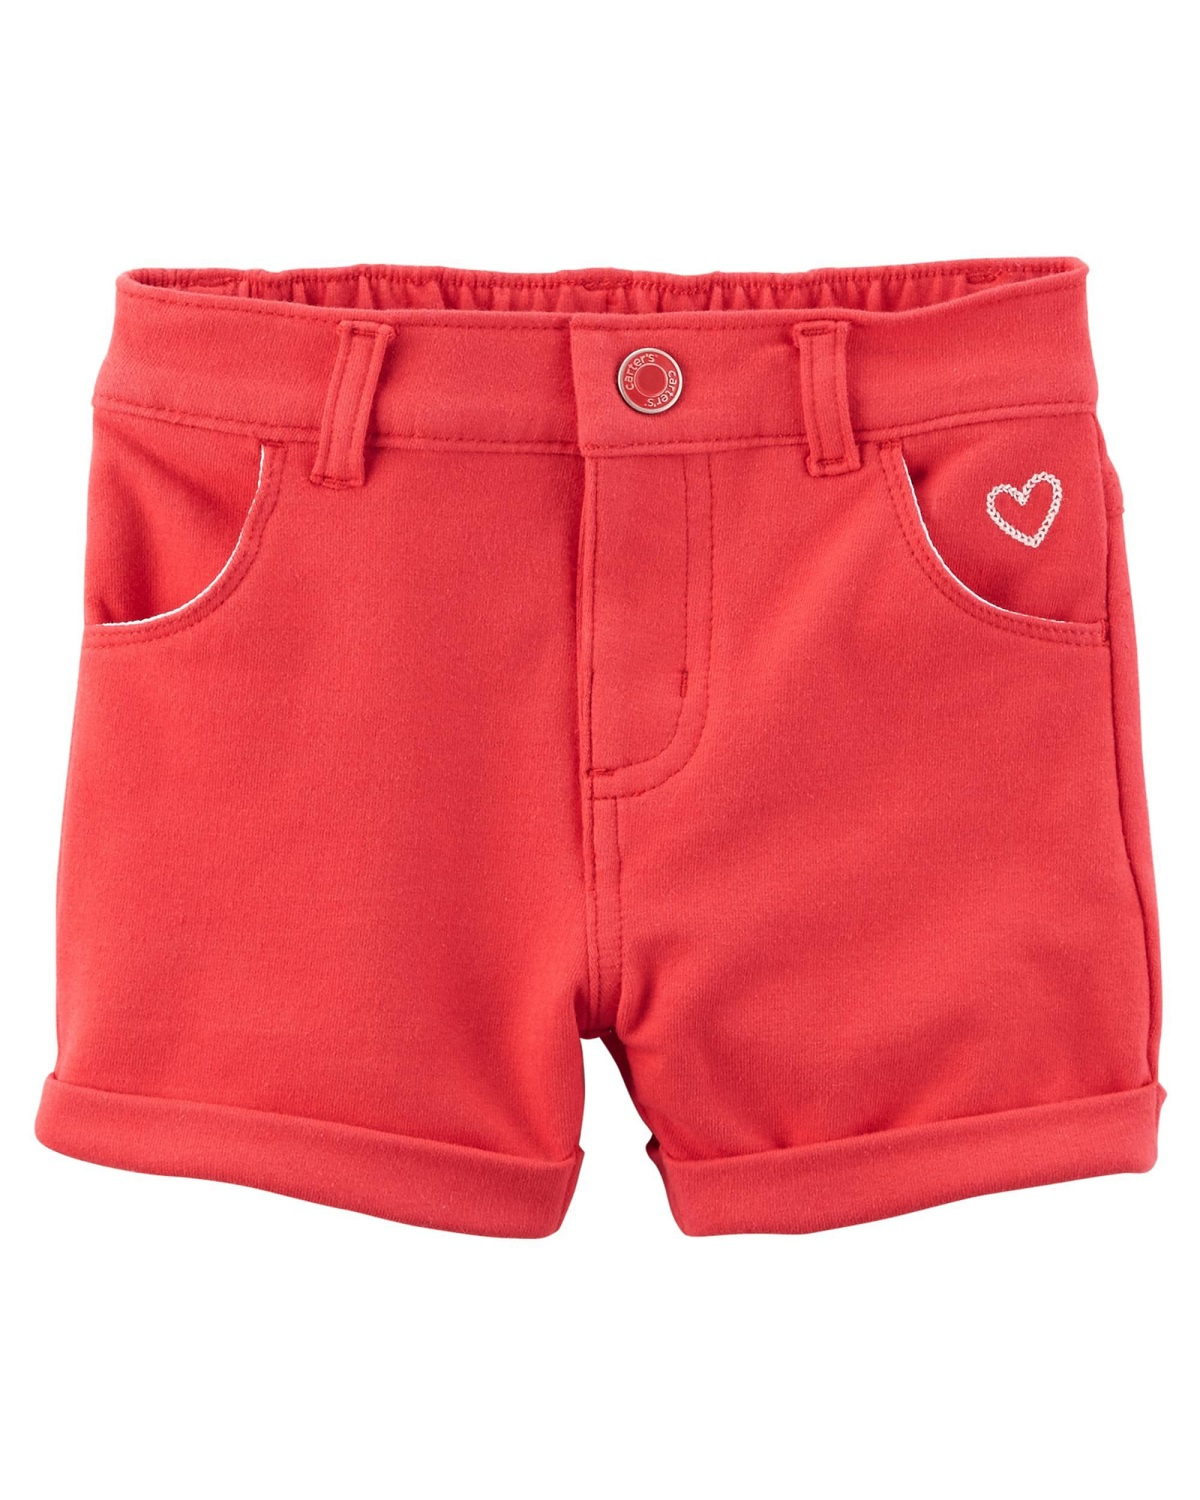 Carter's Baby Girls' Stretch Skimmer Shorts, Red